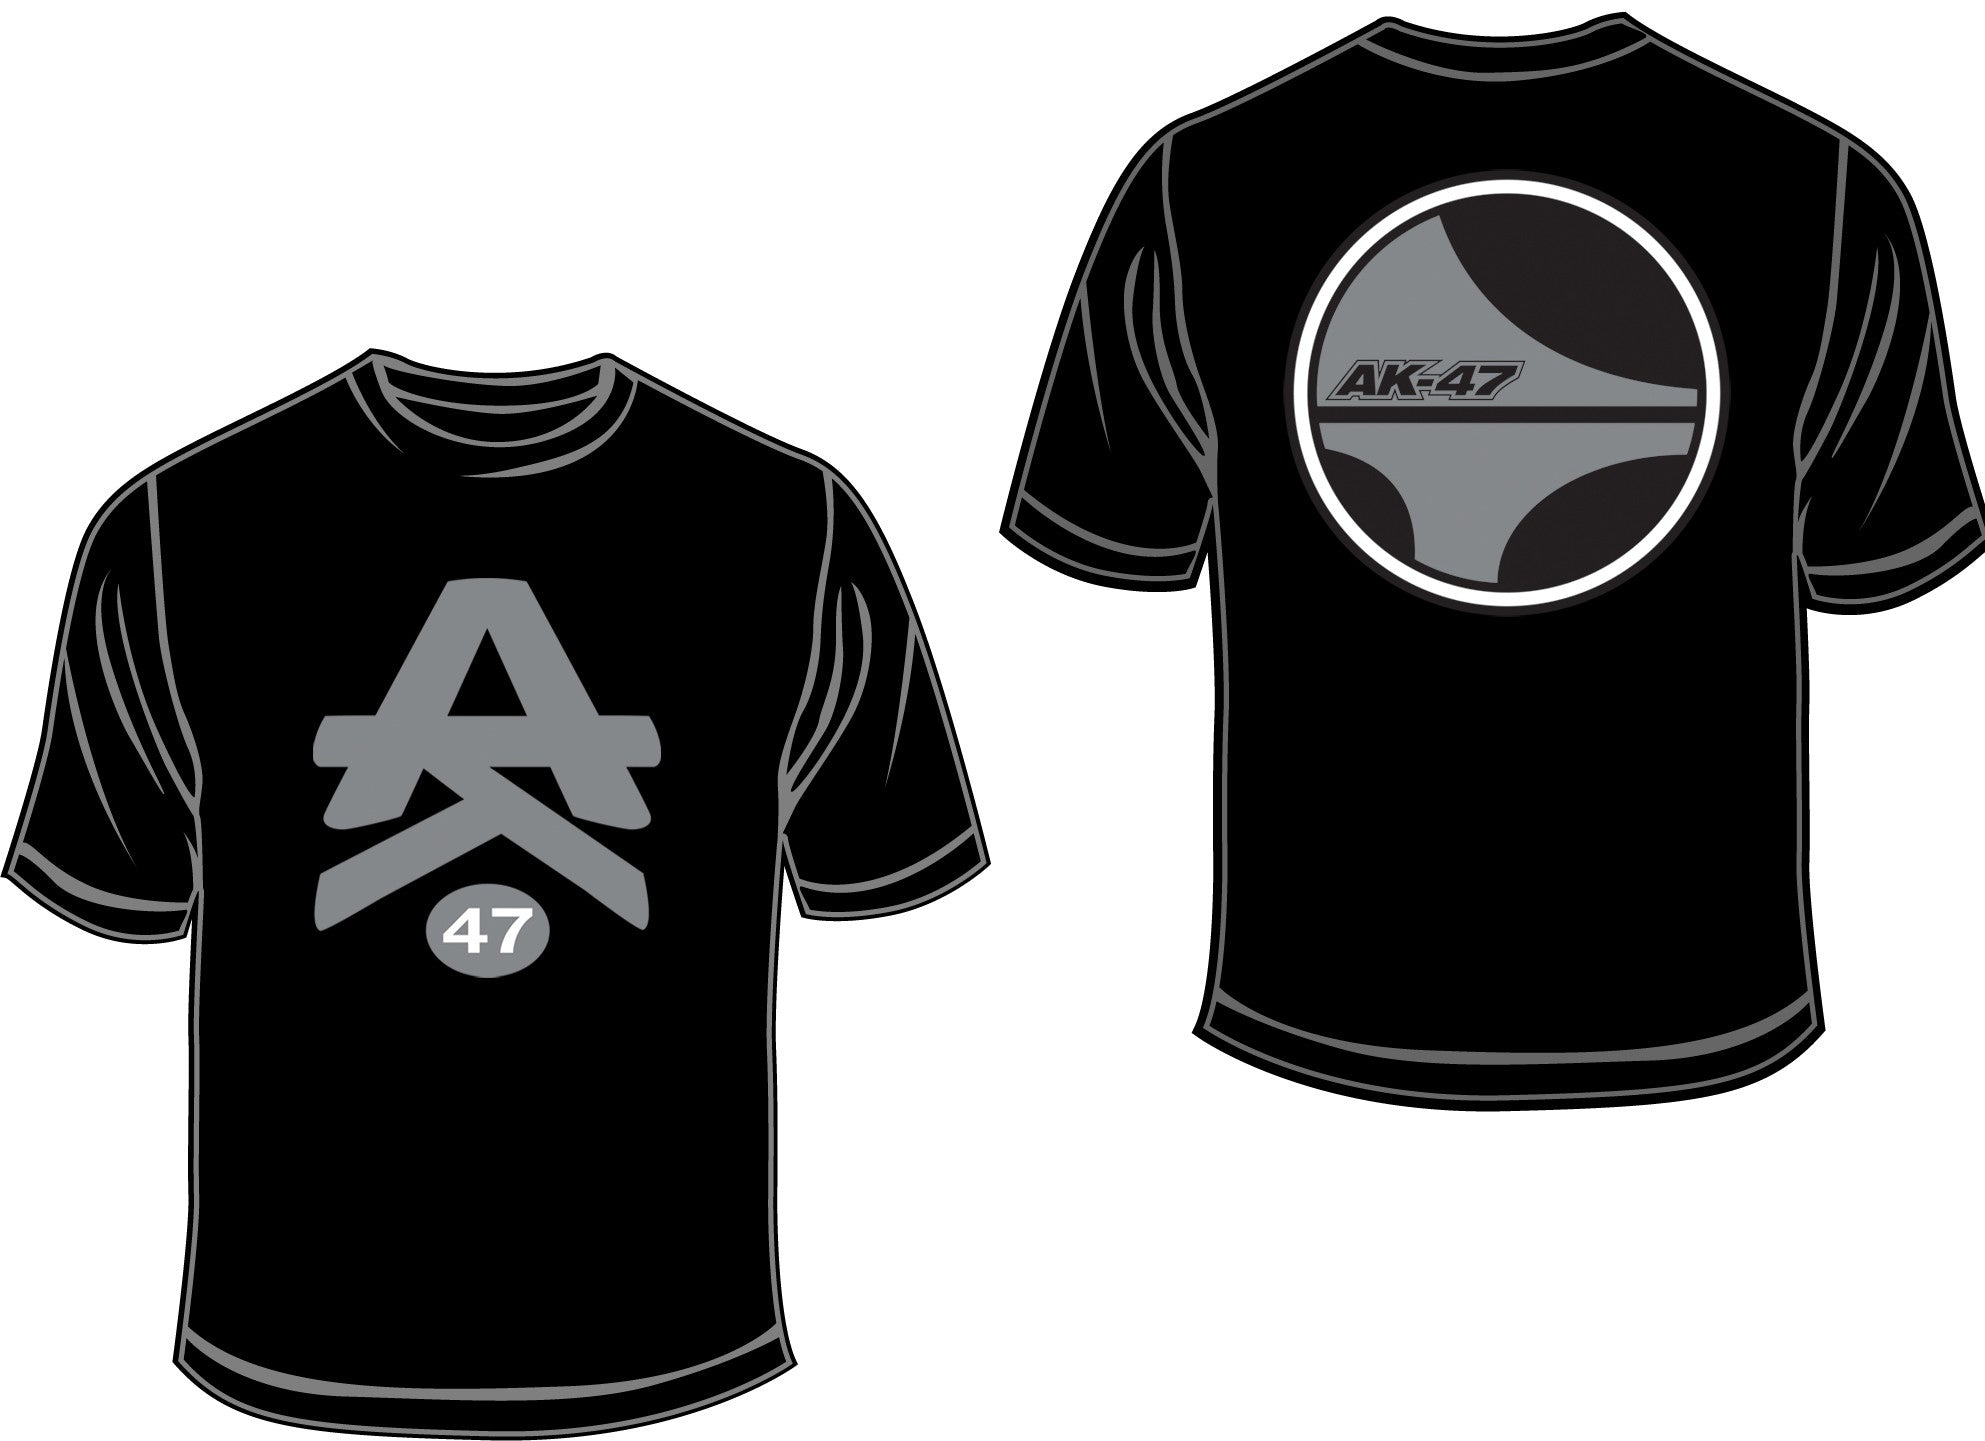 AK-47 Silver and Black Oakland Edition T-Shirt (LIMITED EDITION)